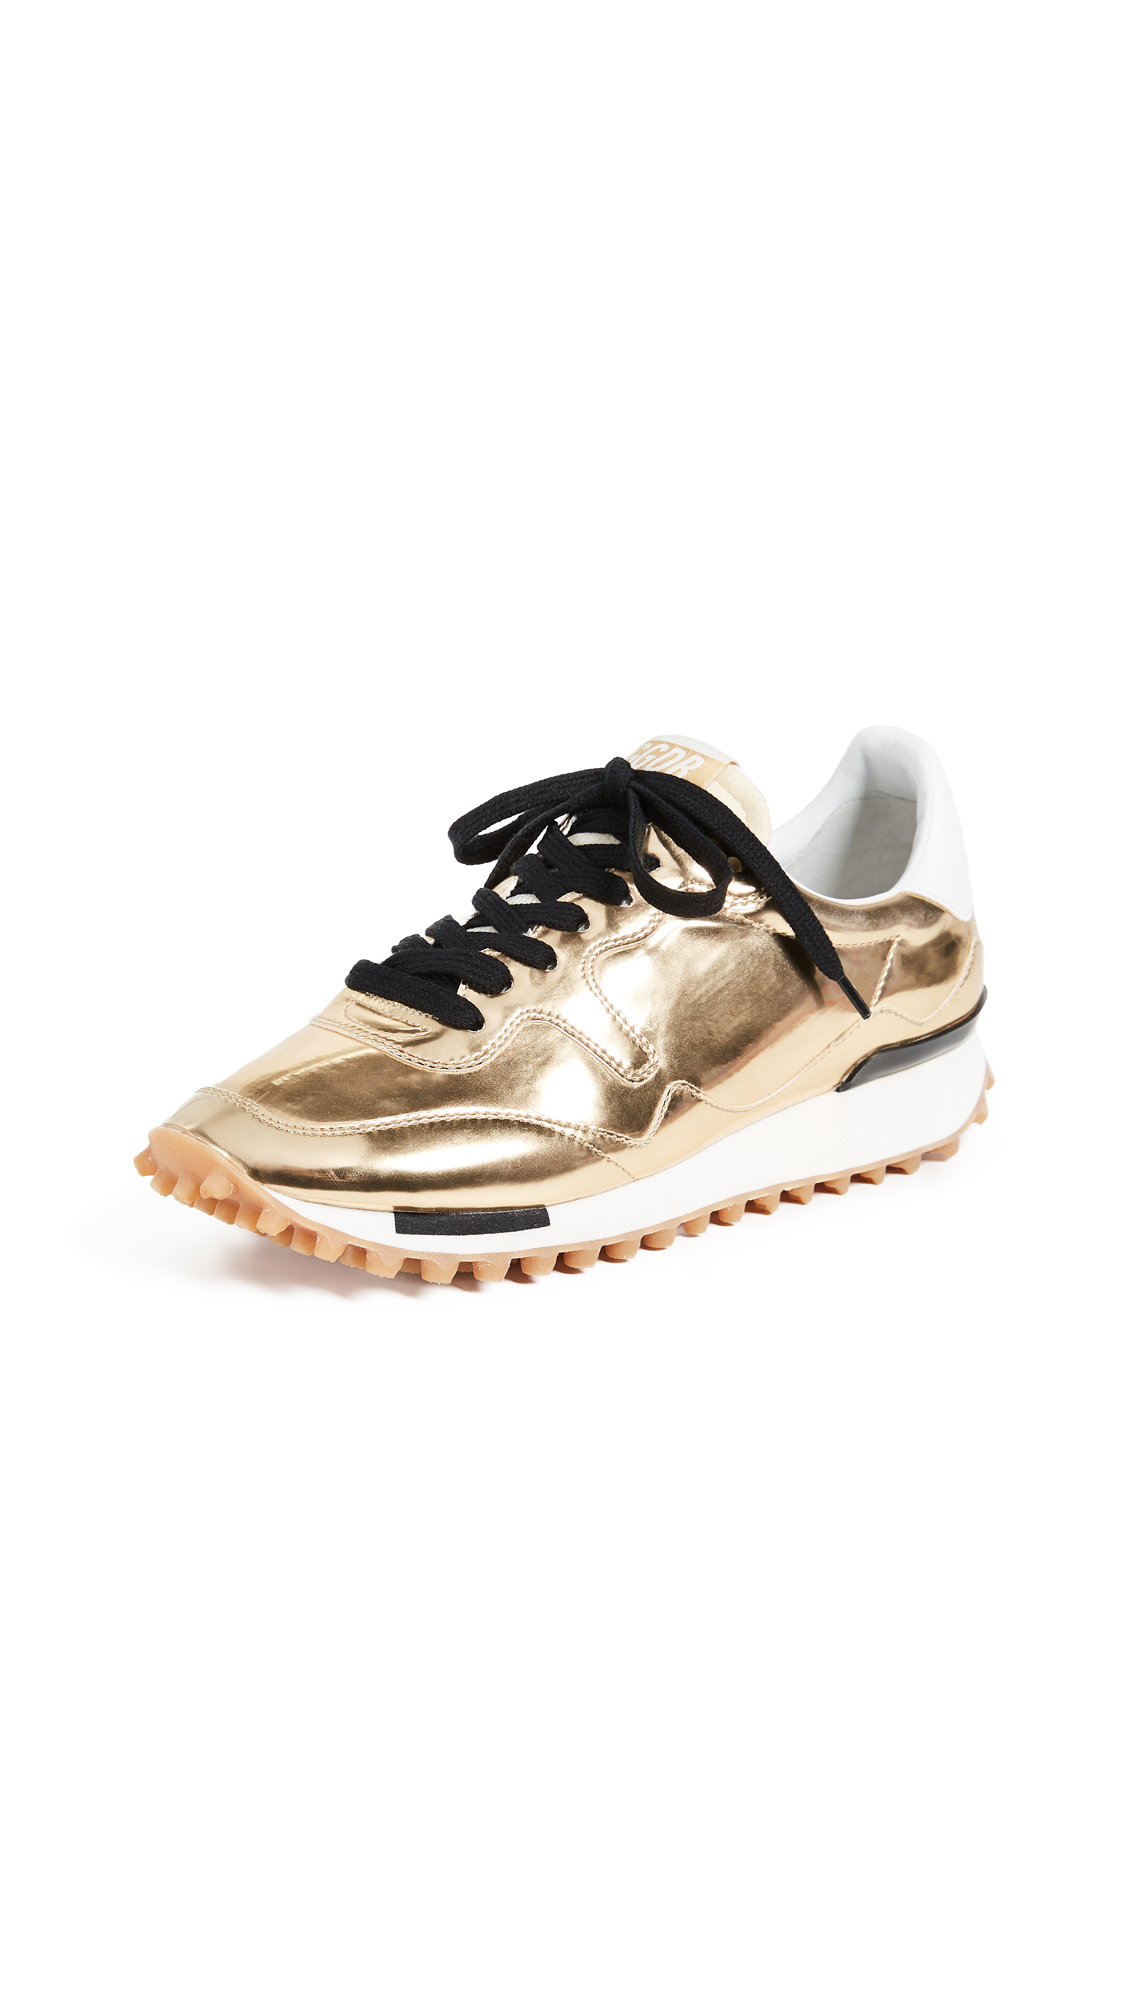 Golden Goose Starland Sneakers - Gold Metal